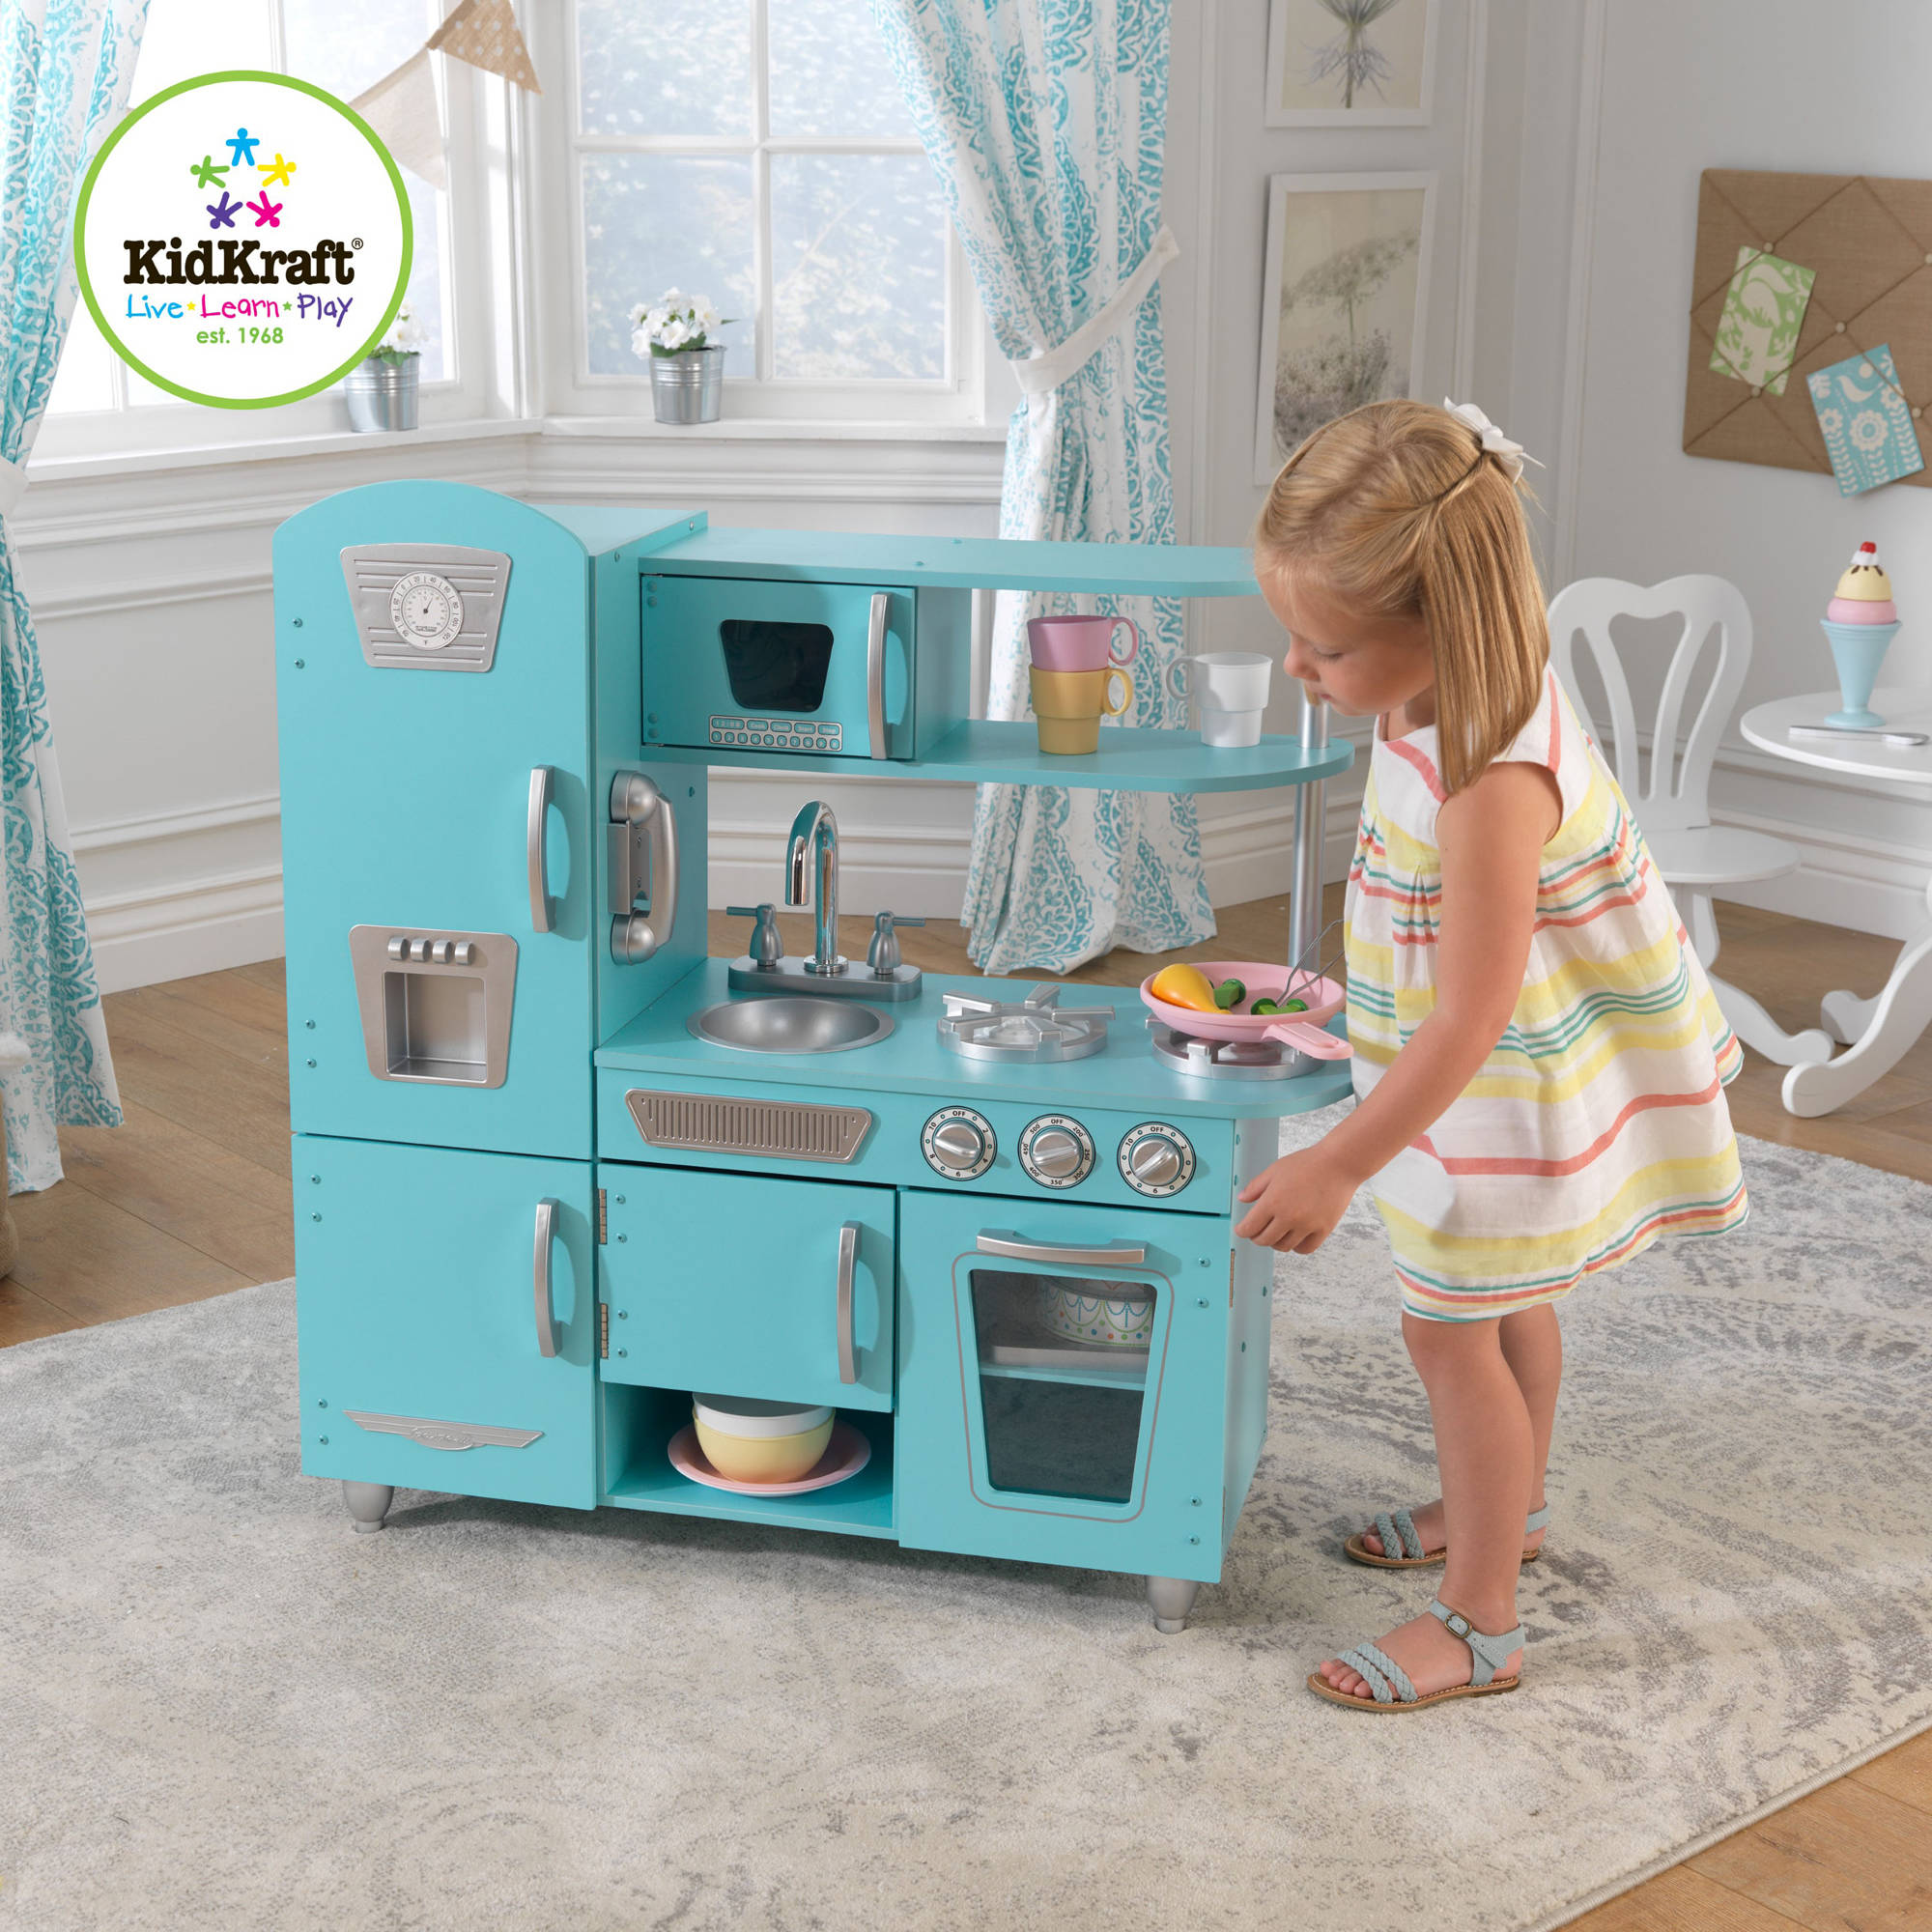 KidKraft Vintage Wooden Play Kitchen Set, Blue